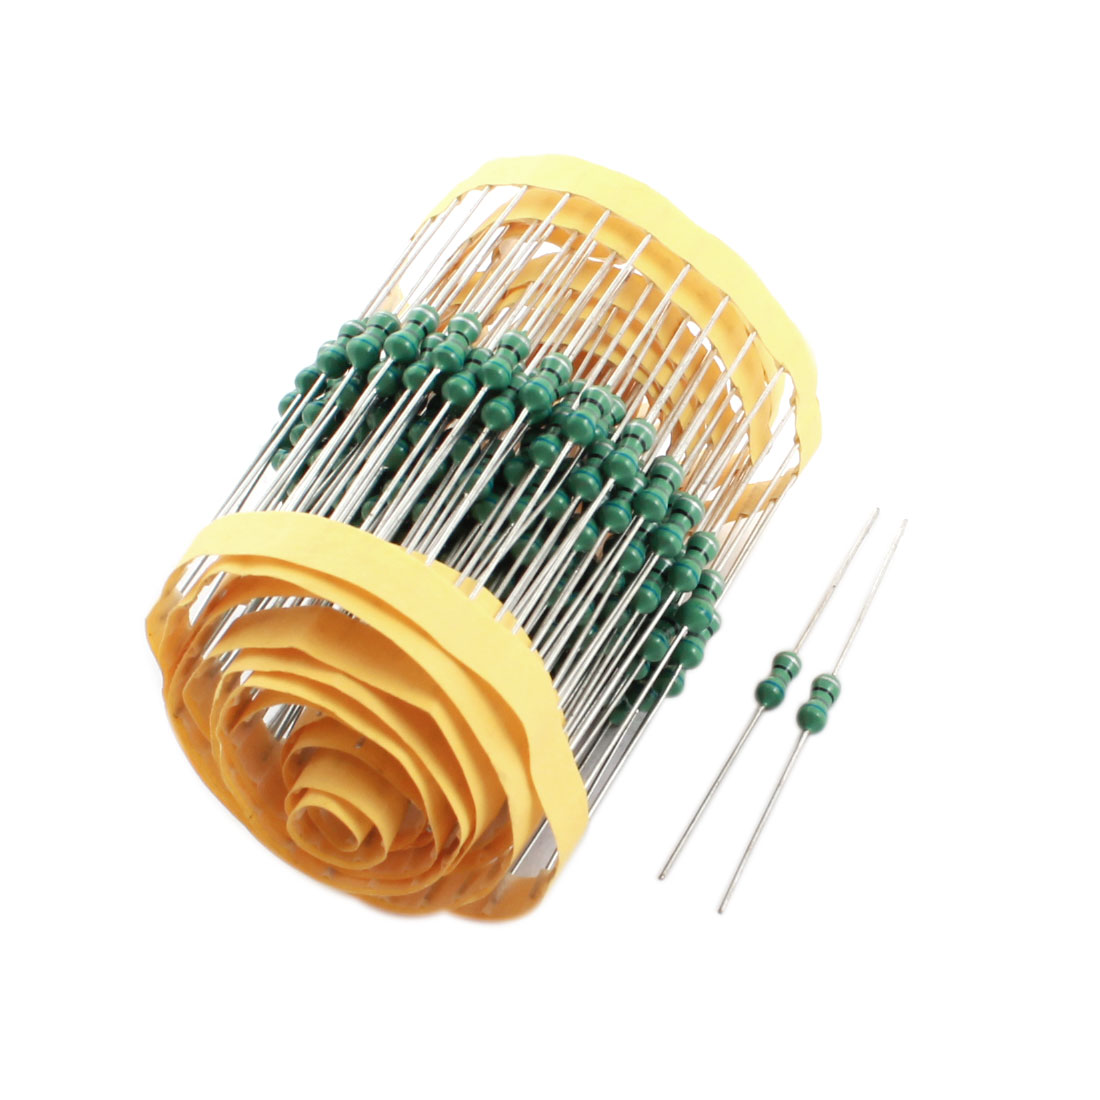 200Pcs Electronic Component 1/2W 68uH 10% Color Ring Inductors 4x10mm